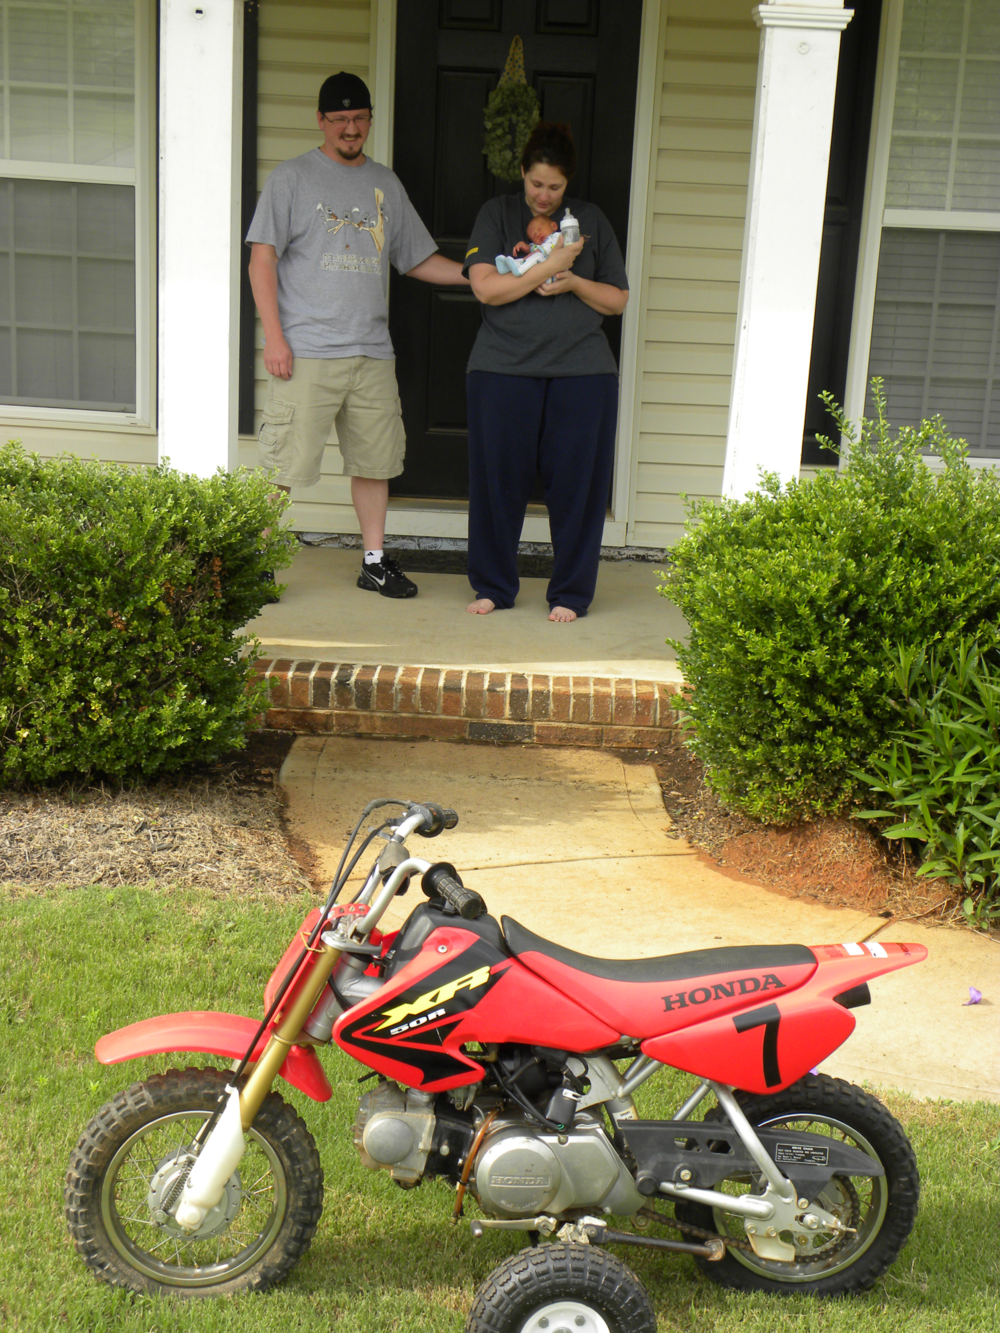 Dirt bike surprise